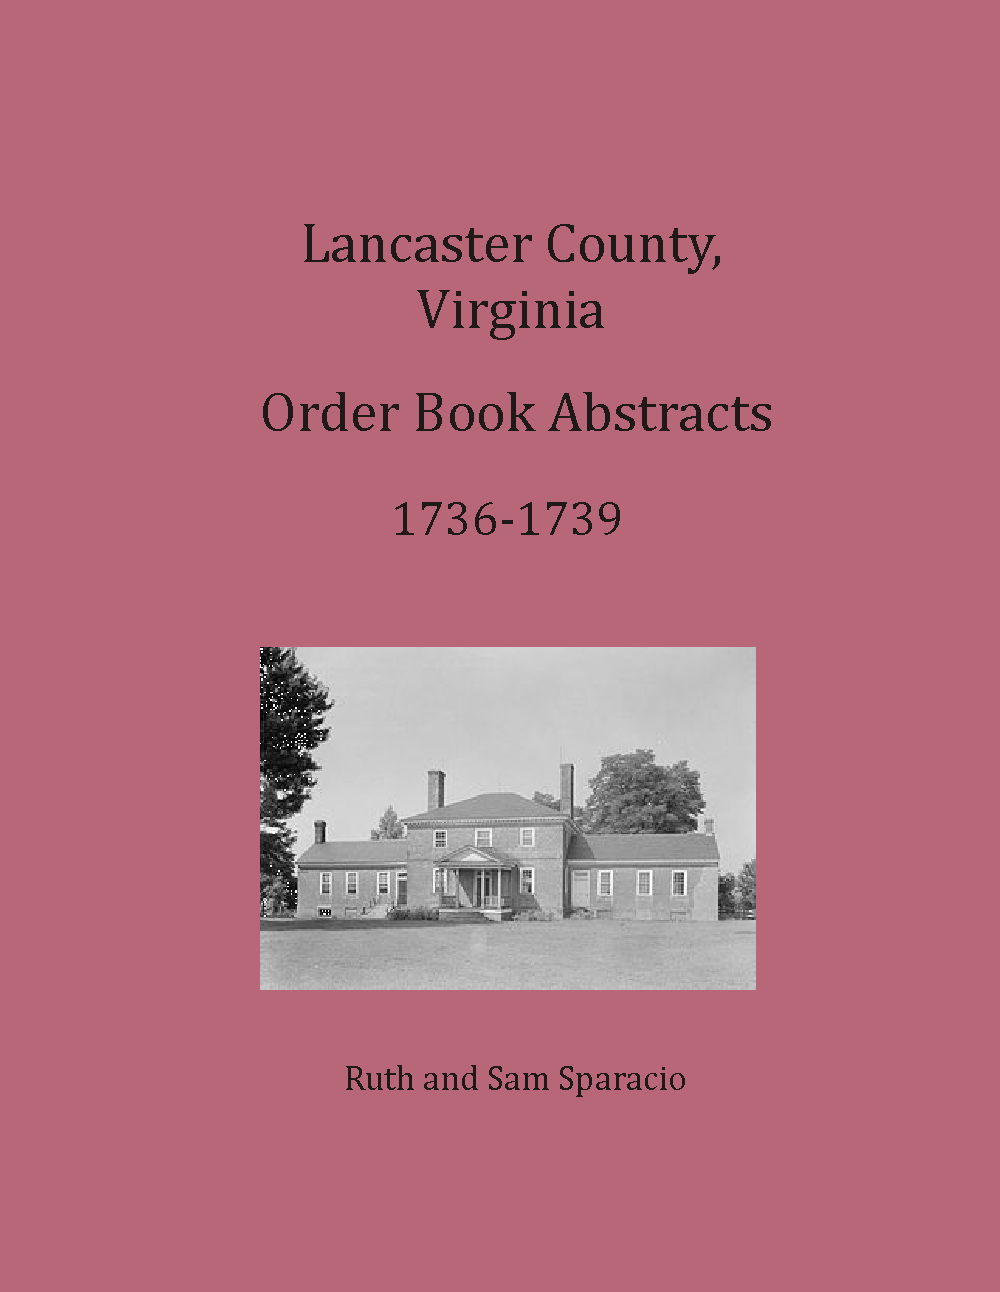 Lancaster County, Virginia Order Book Abstracts, 1736-1739